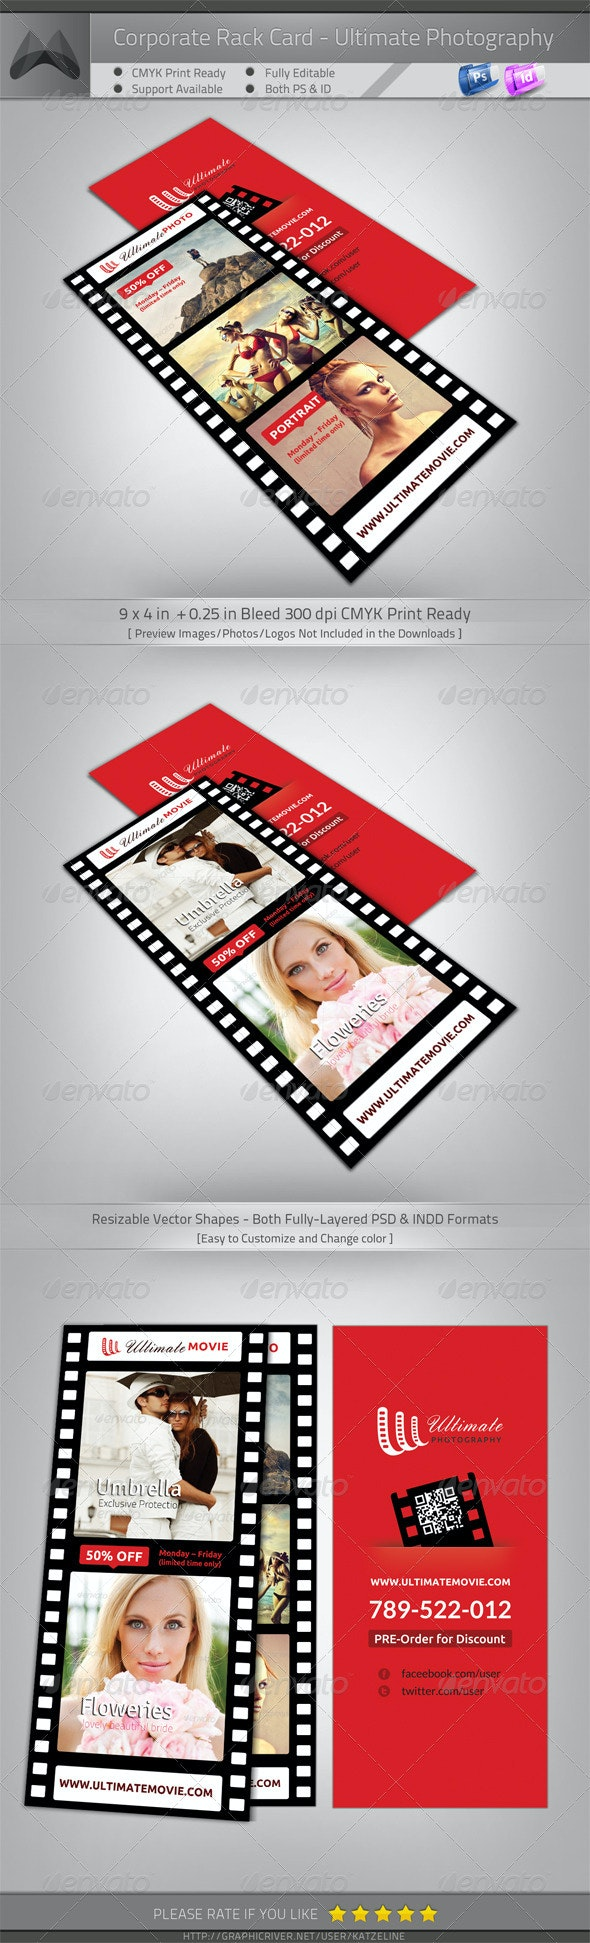 Ultimate Movie/Photography/Image - Rack Card Flyer - Corporate Flyers